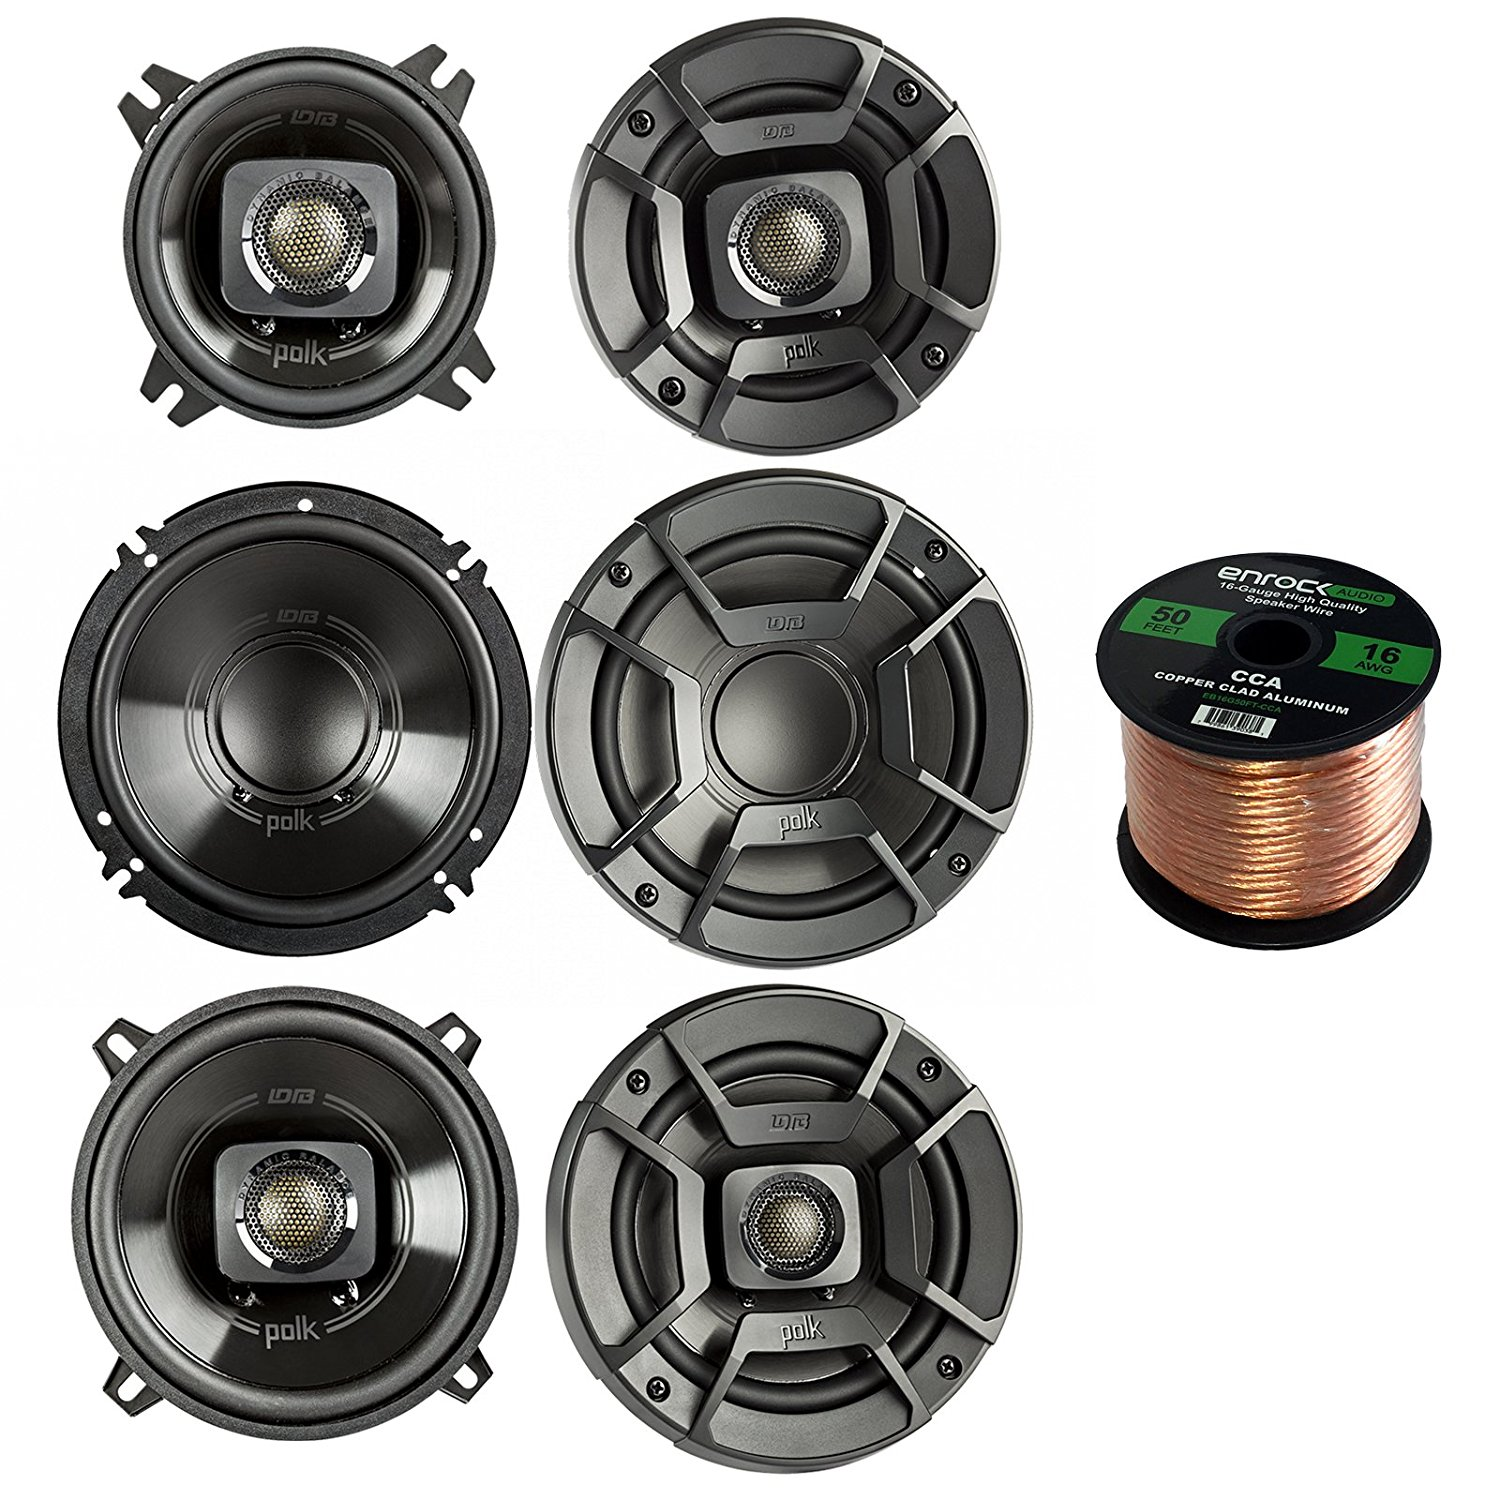 "2x Polk Audio DB522 5.25-Inch 300-Watt 2-Way Speakers, 2x DB6502 6.5"" 300W 2 Way Car/Marine Speakers, 2x Polk Audio DB402 4-inch 135W Coaxial Speakers Black, Enrock 16-Gauge 50 Foot Speaker Wire"